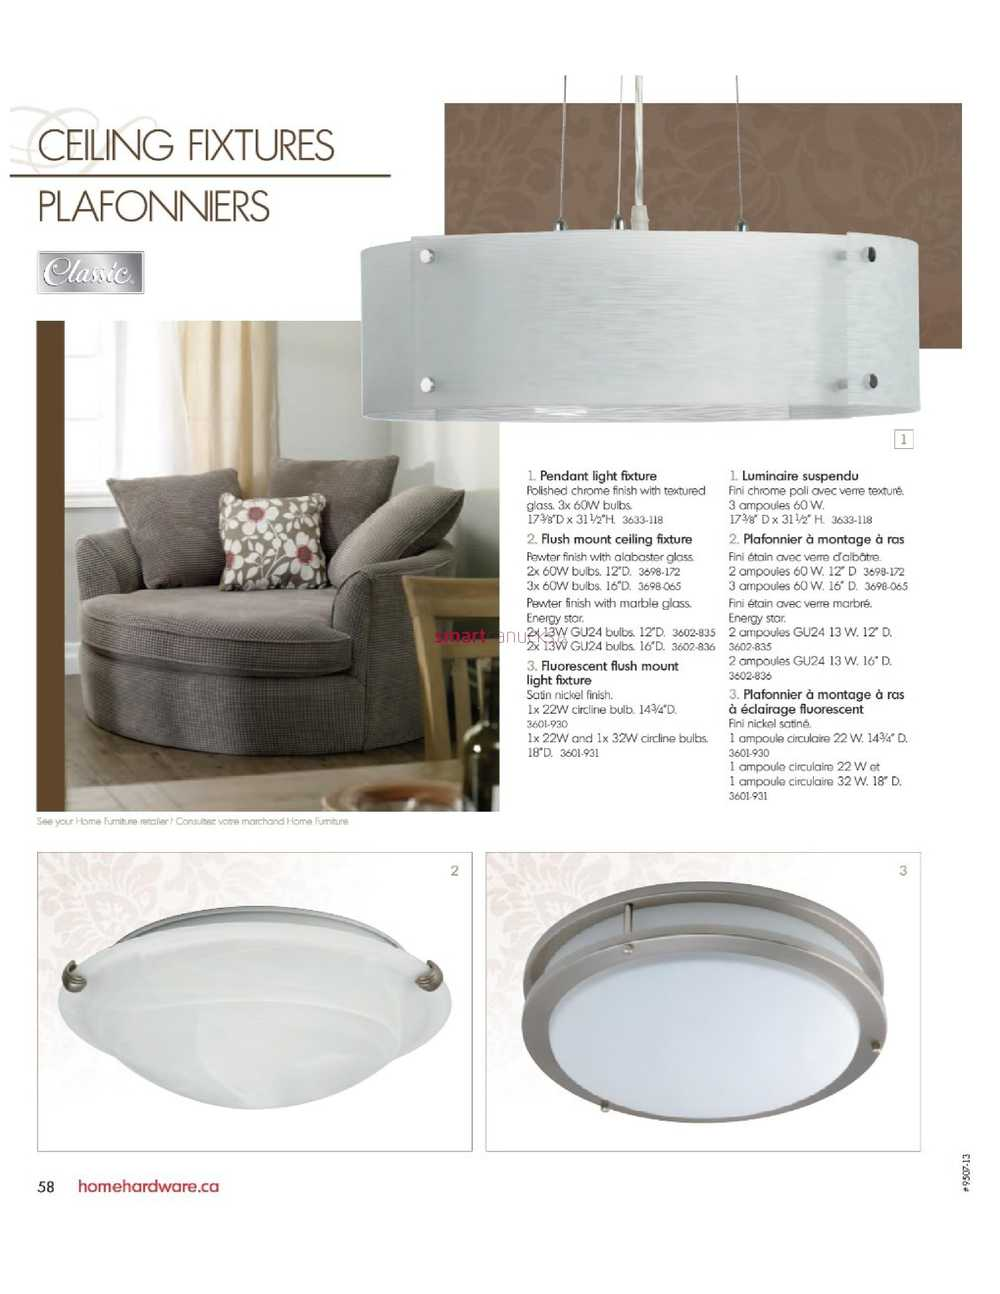 Home hardware lighting electrical catalog